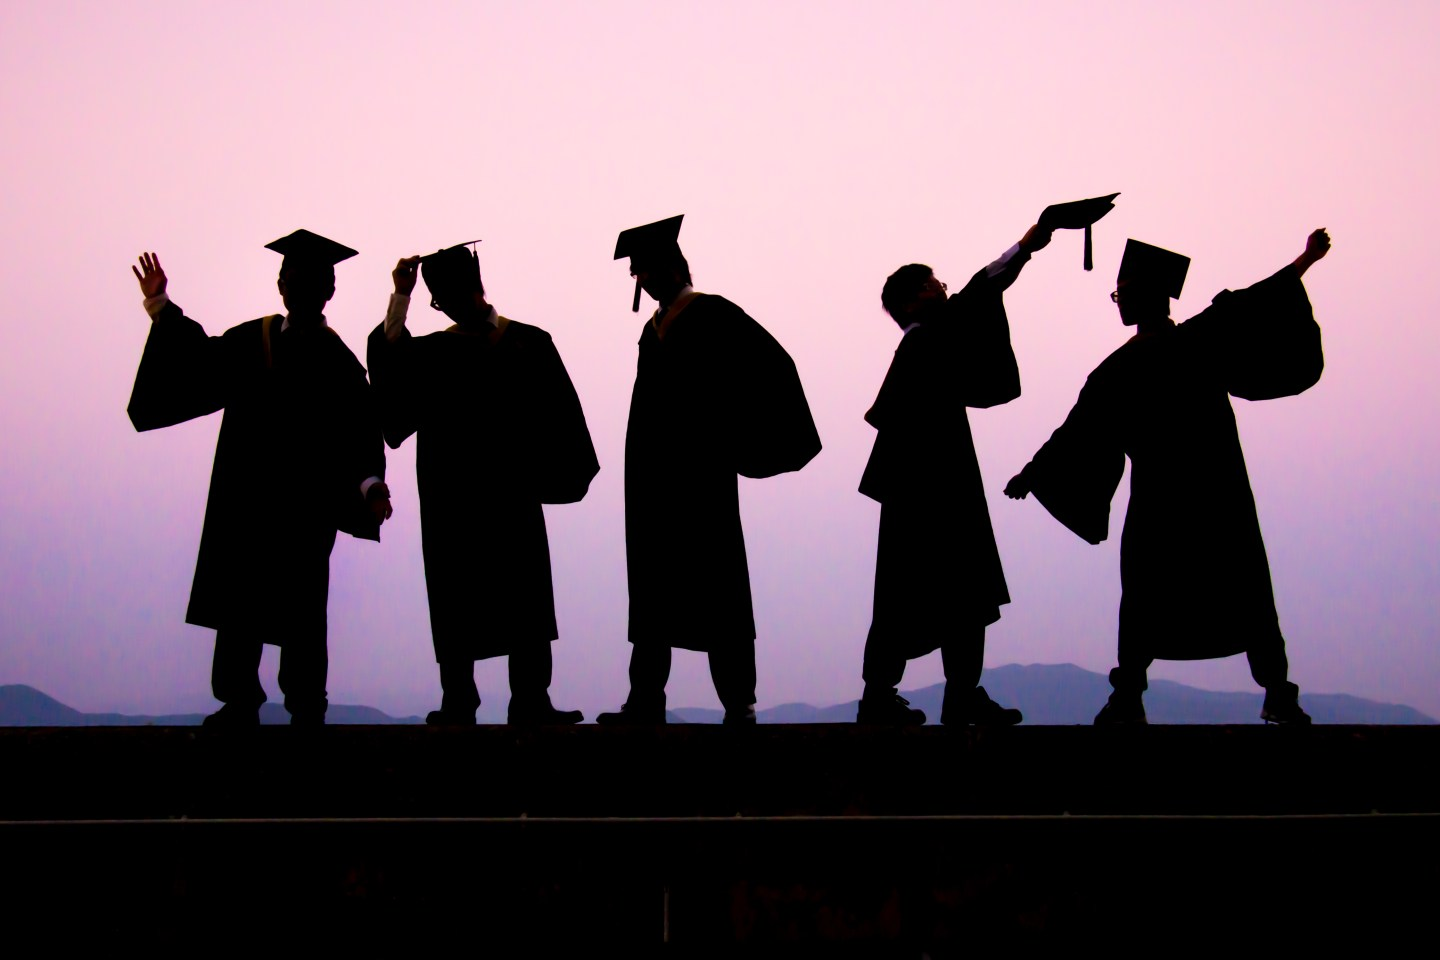 Our problematic prejudice towards post-secondary education